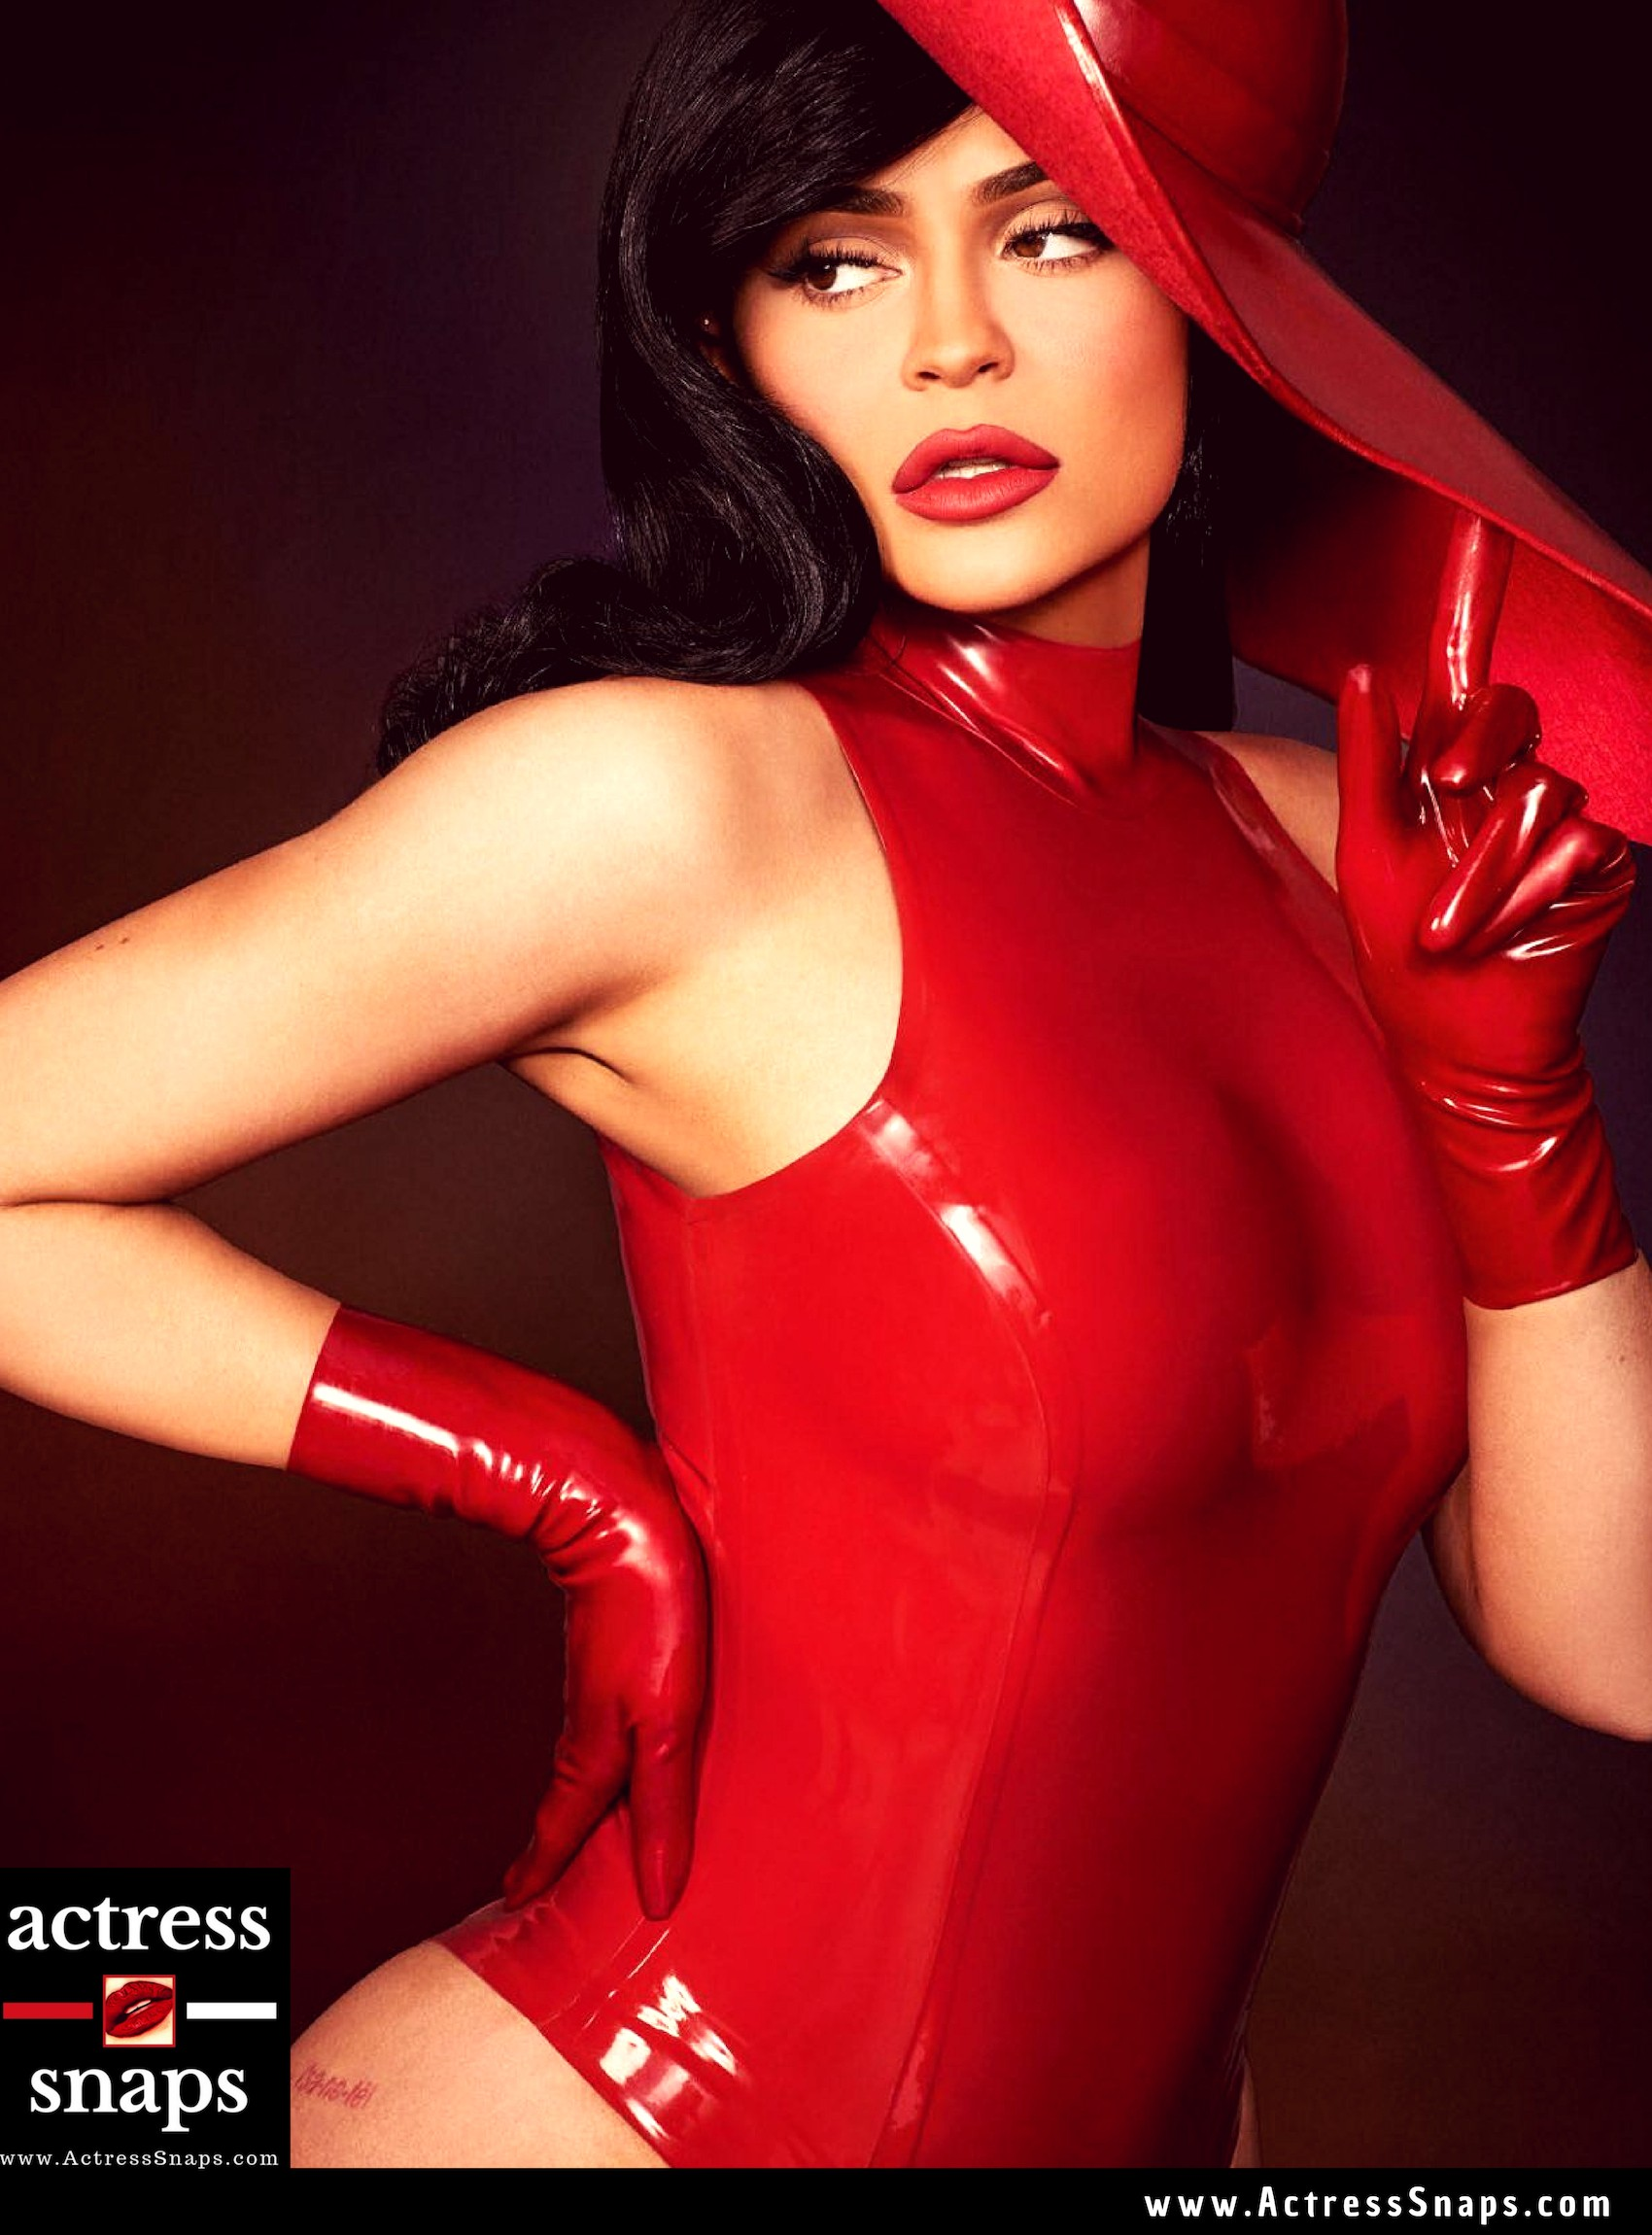 Sexy Kylie Jenner Interview Magazine Pictures - Sexy Actress Pictures | Hot Actress Pictures - ActressSnaps.com